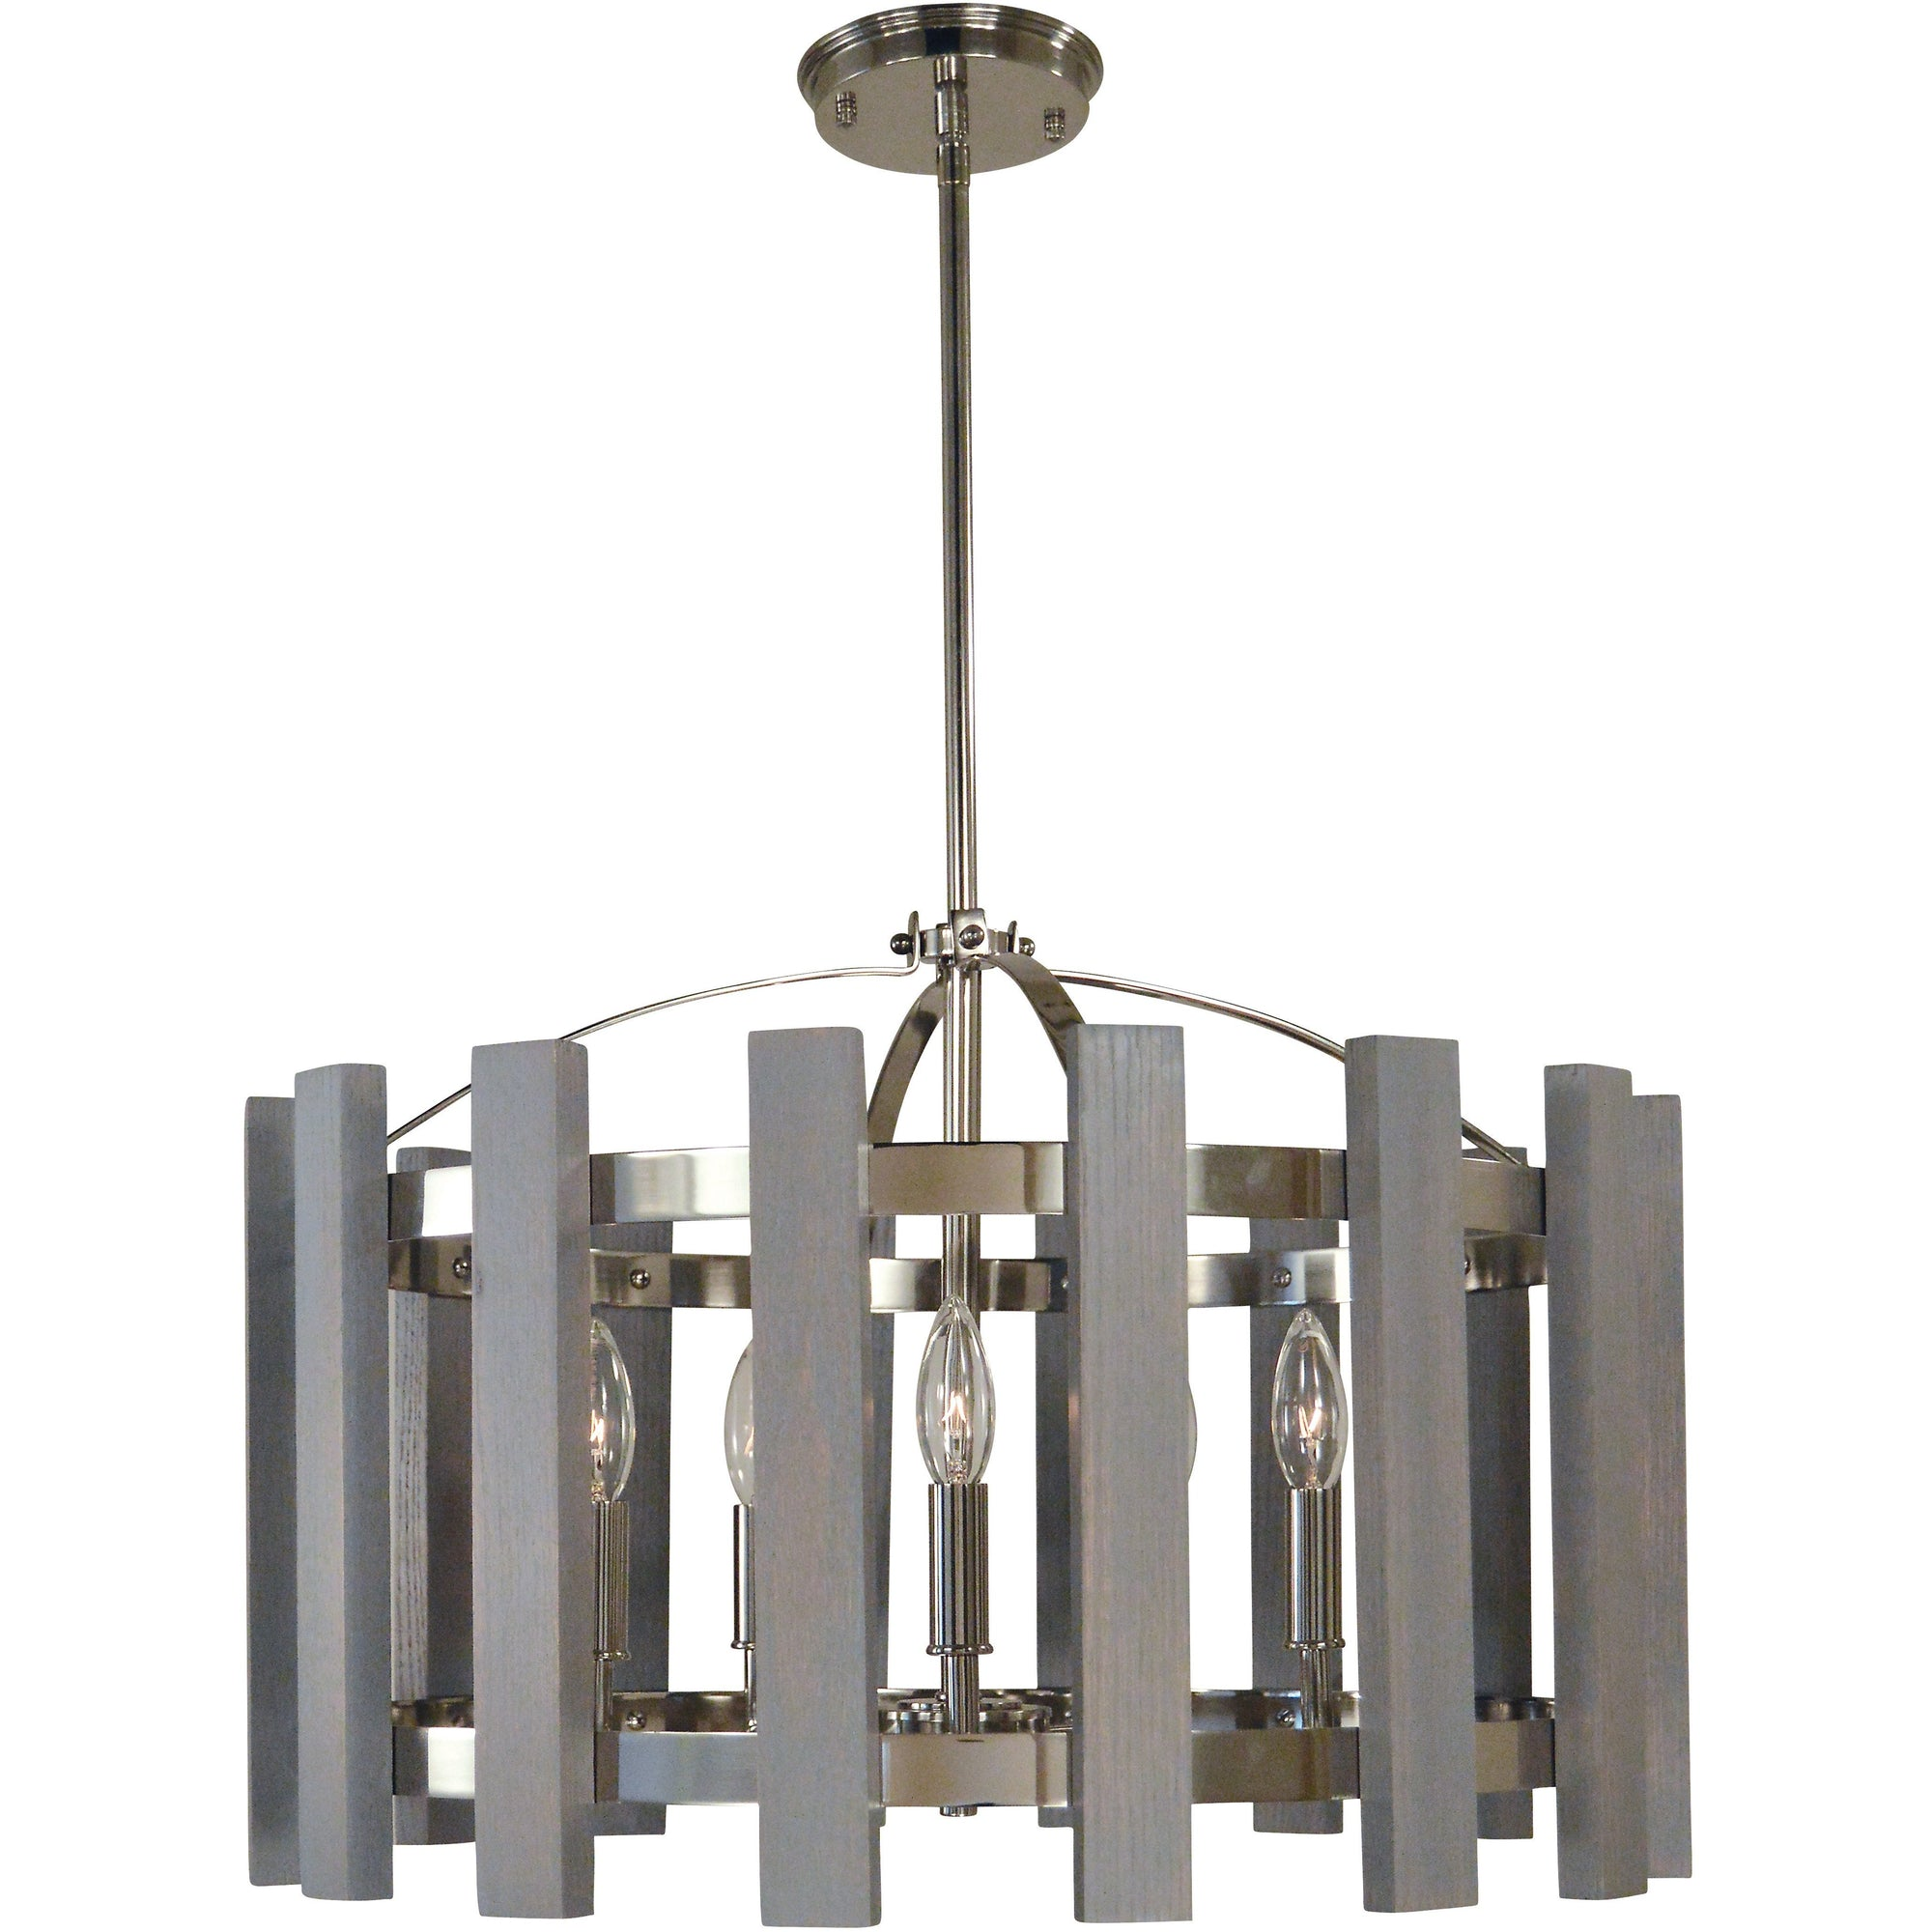 Framburg Chandeliers Polished Nickel 5-Light Arcadia Dining Chandelier by Framburg 5125